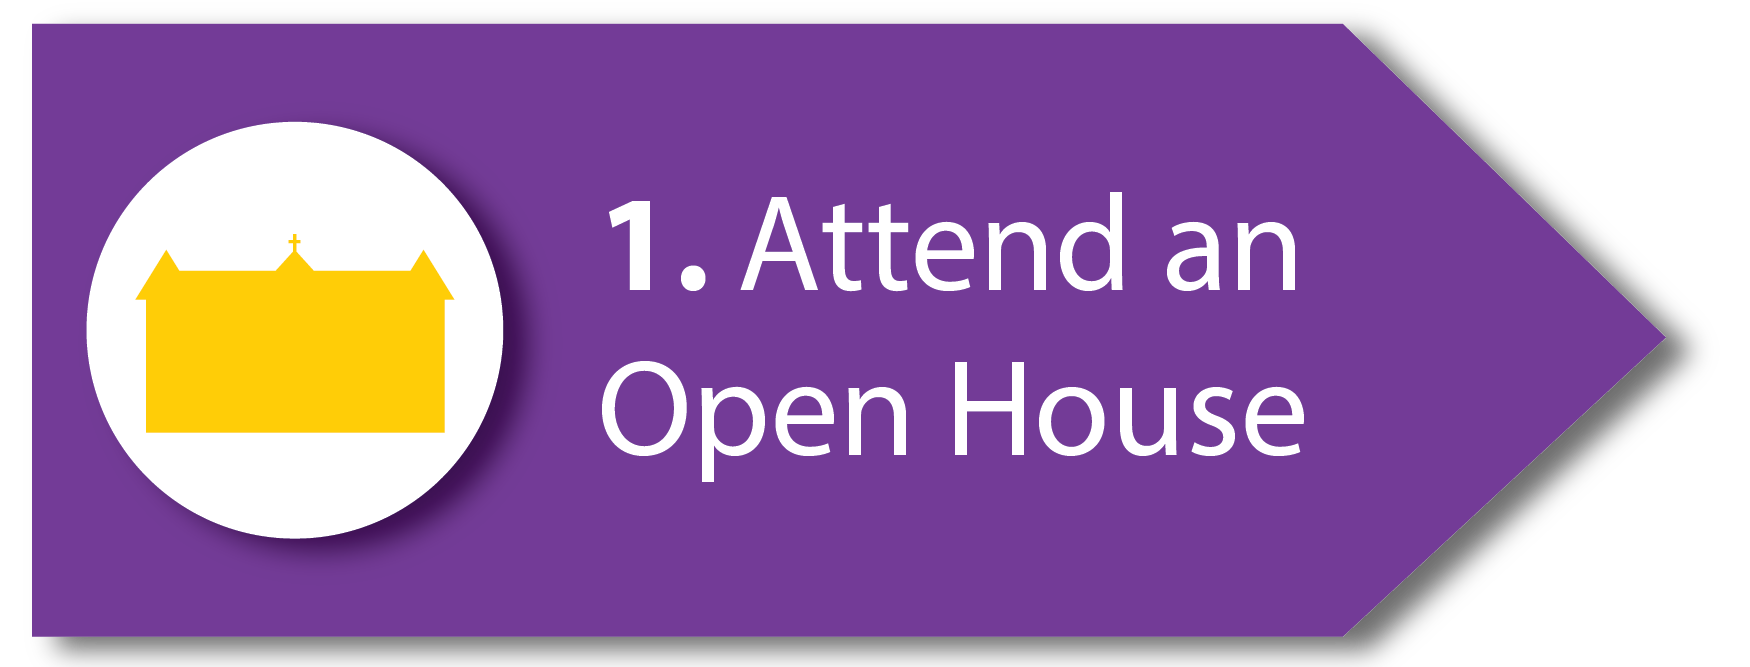 Attend Open House